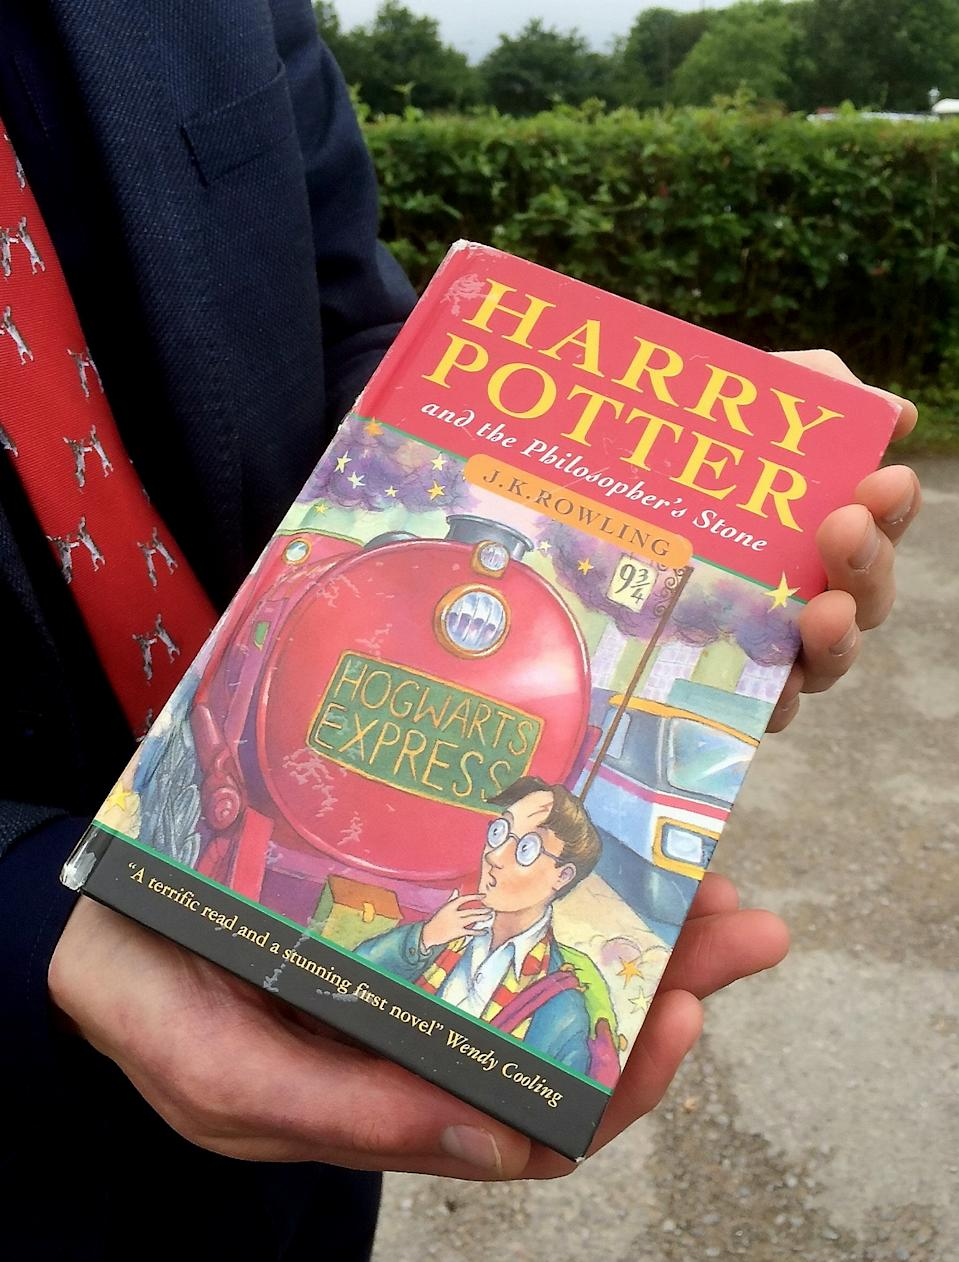 Hansons Auctioneers' Jim Spencer with the Harry Potter first edition. (Source: Hansons Auctioneers)